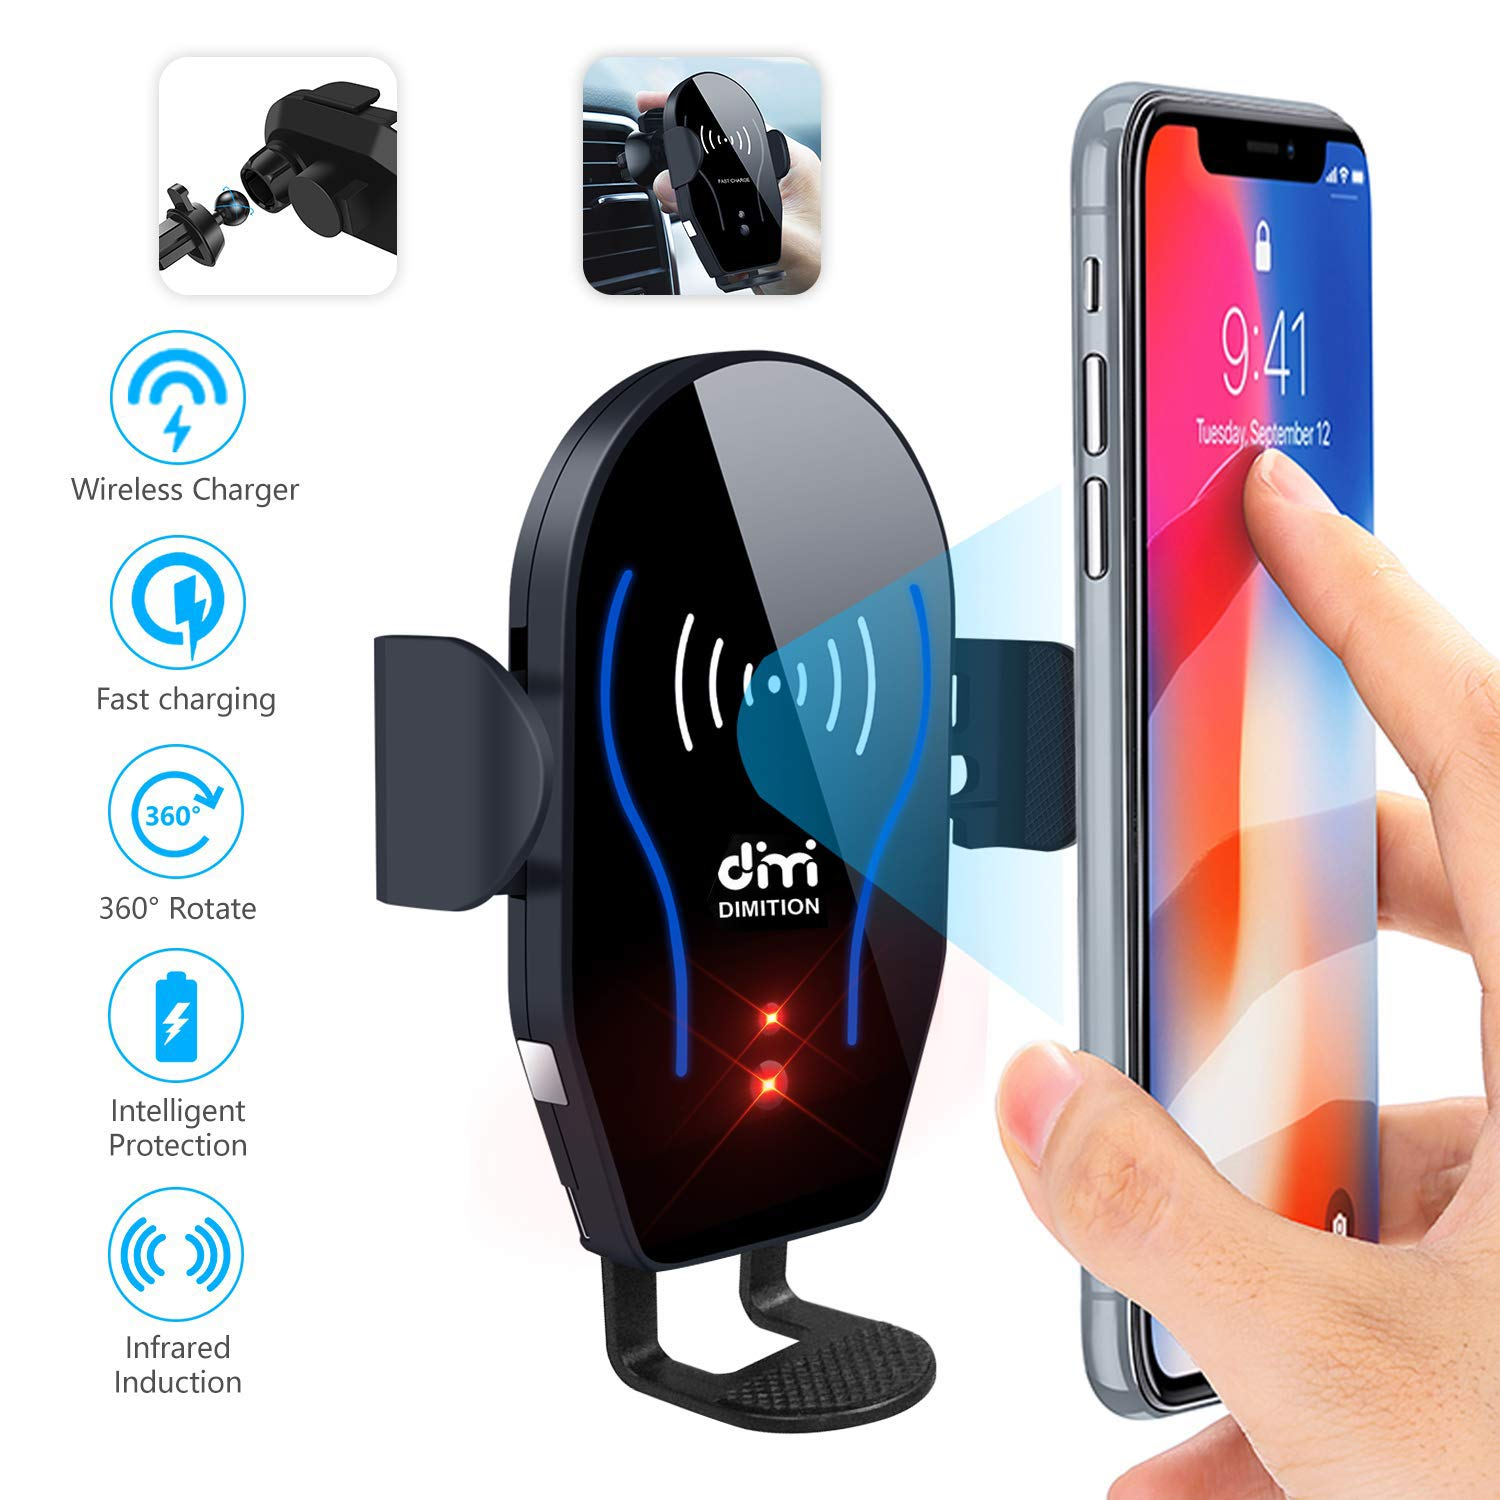 DM Car Phone Mount Air Vent Automatic Clamping Cell Phone Holder for Car Wireless Charger Compatible with iPhone Xs Max/XR/XS/X/8 Plus,Samsung Galaxy S10/S10 Plus/S9/S8/S7/S6/Note5 & Other Smartphone by DM